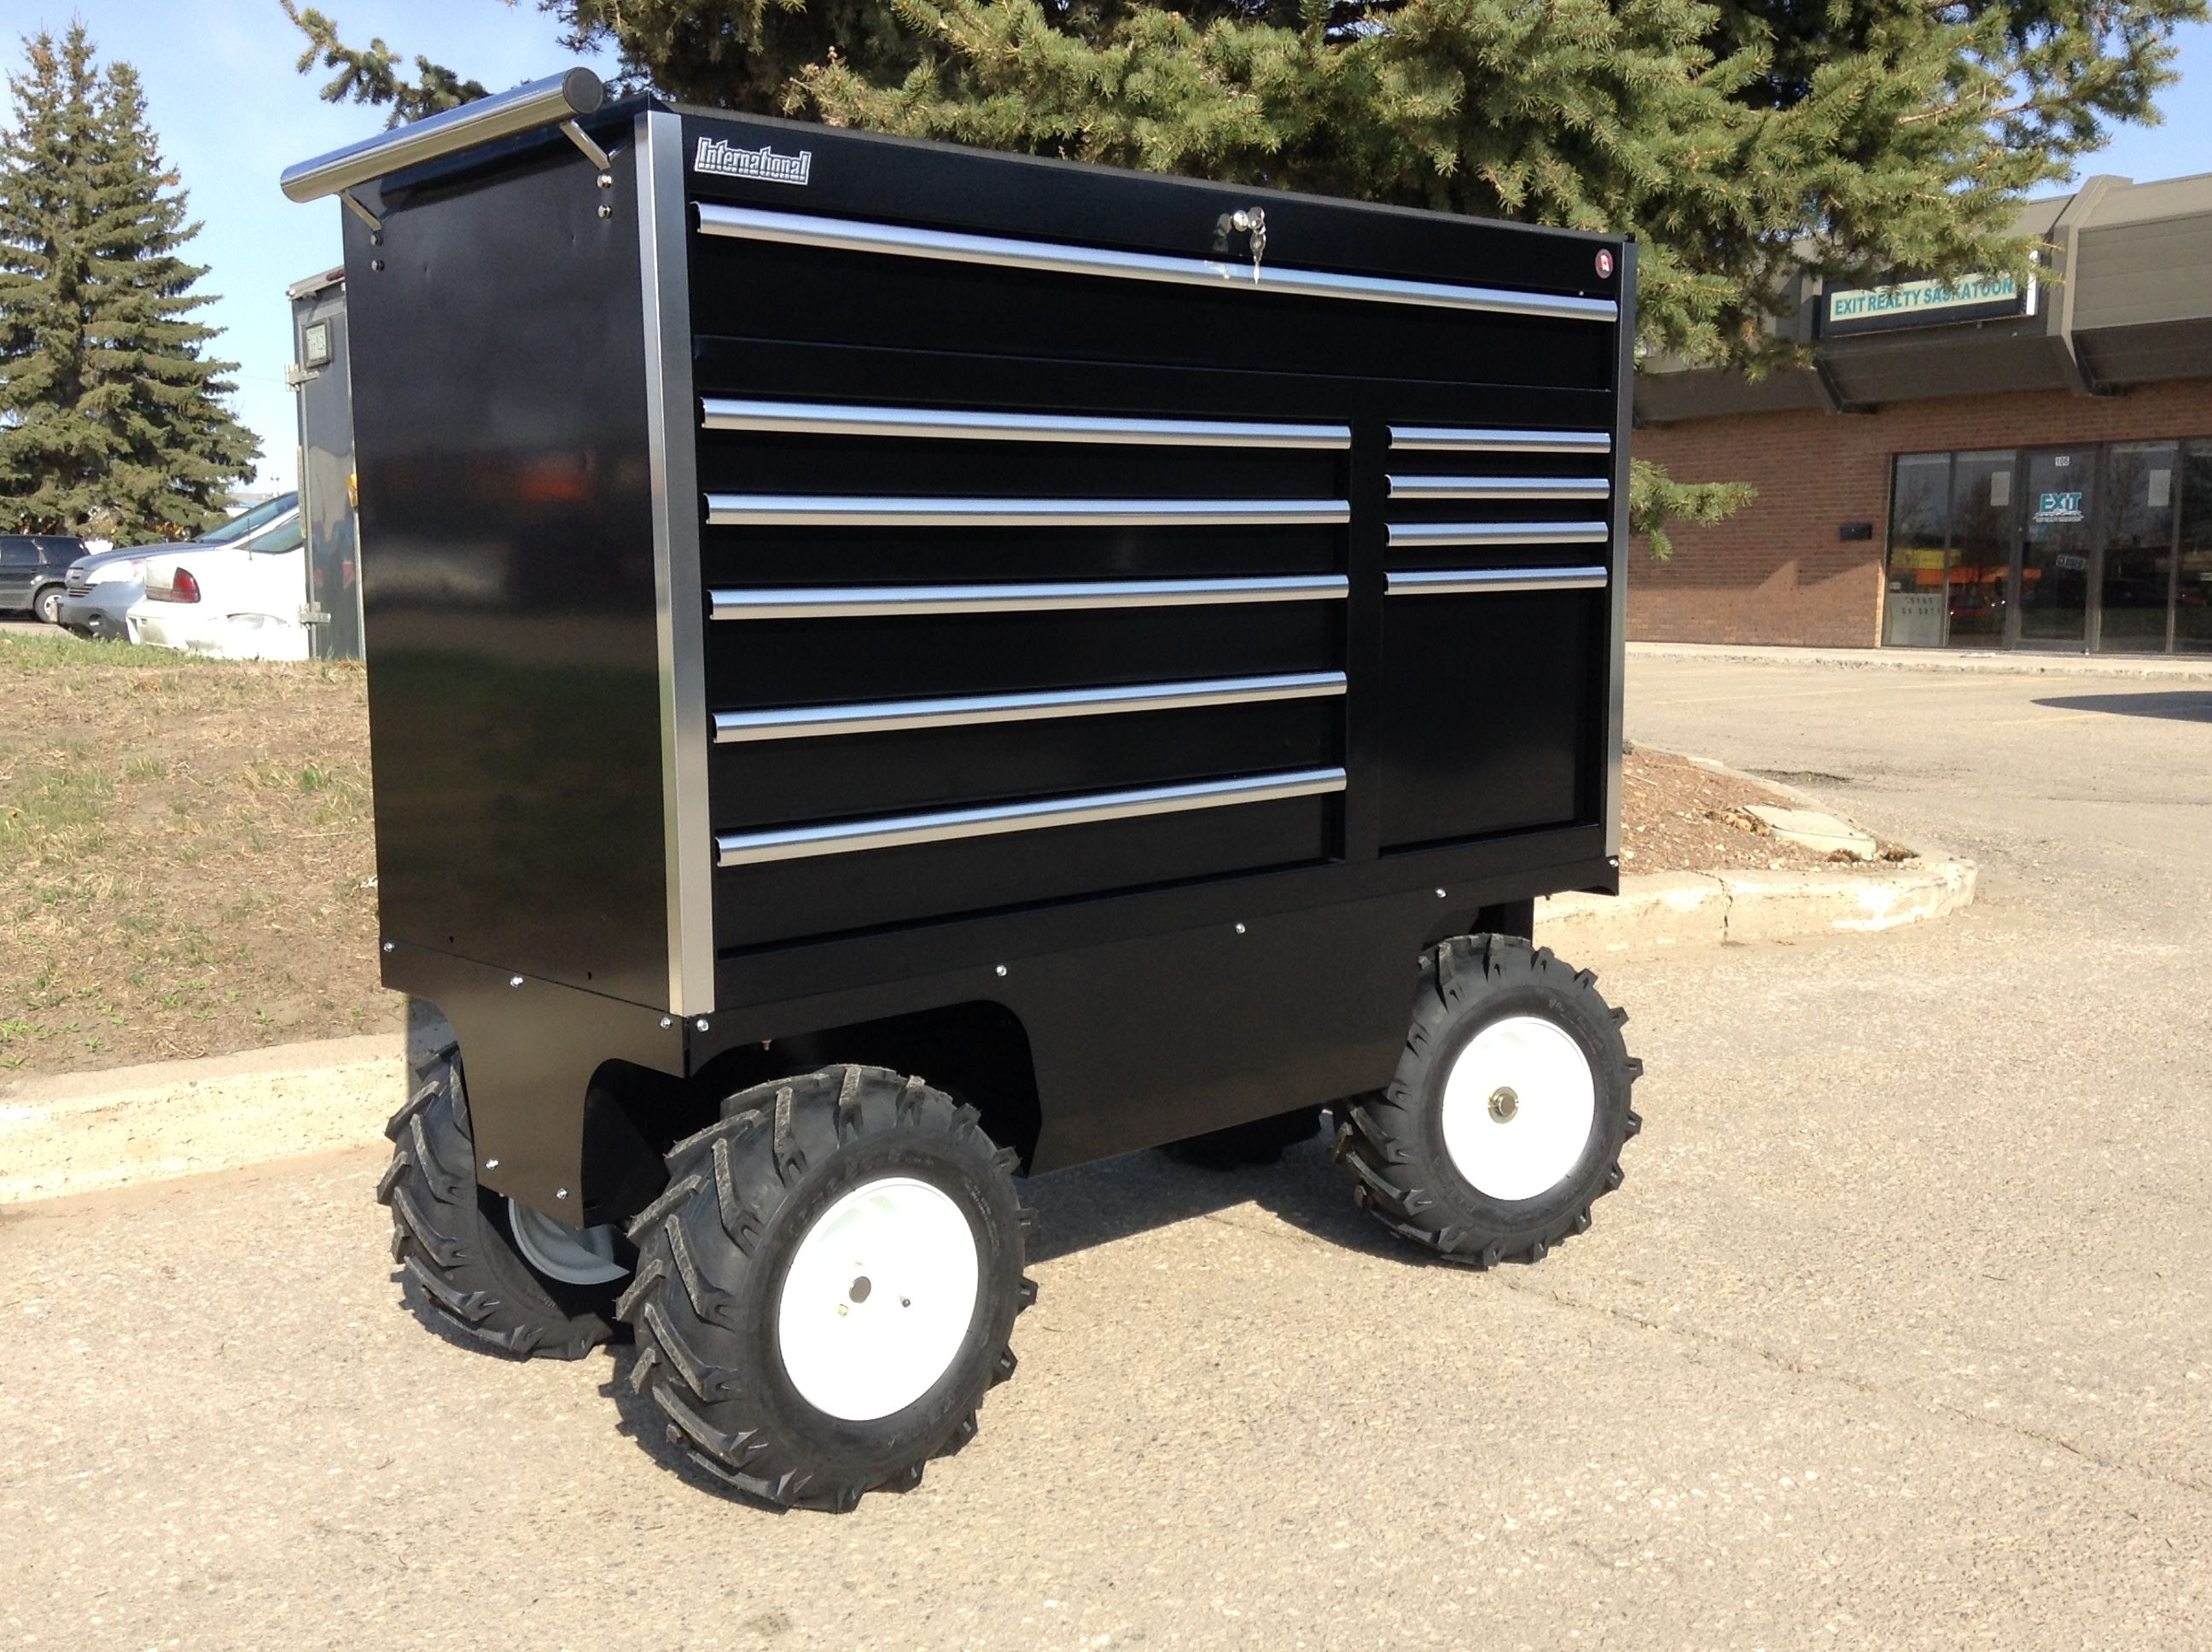 Motorized Electric Pit Carts Designed To Move Heavy Tool Boxes And